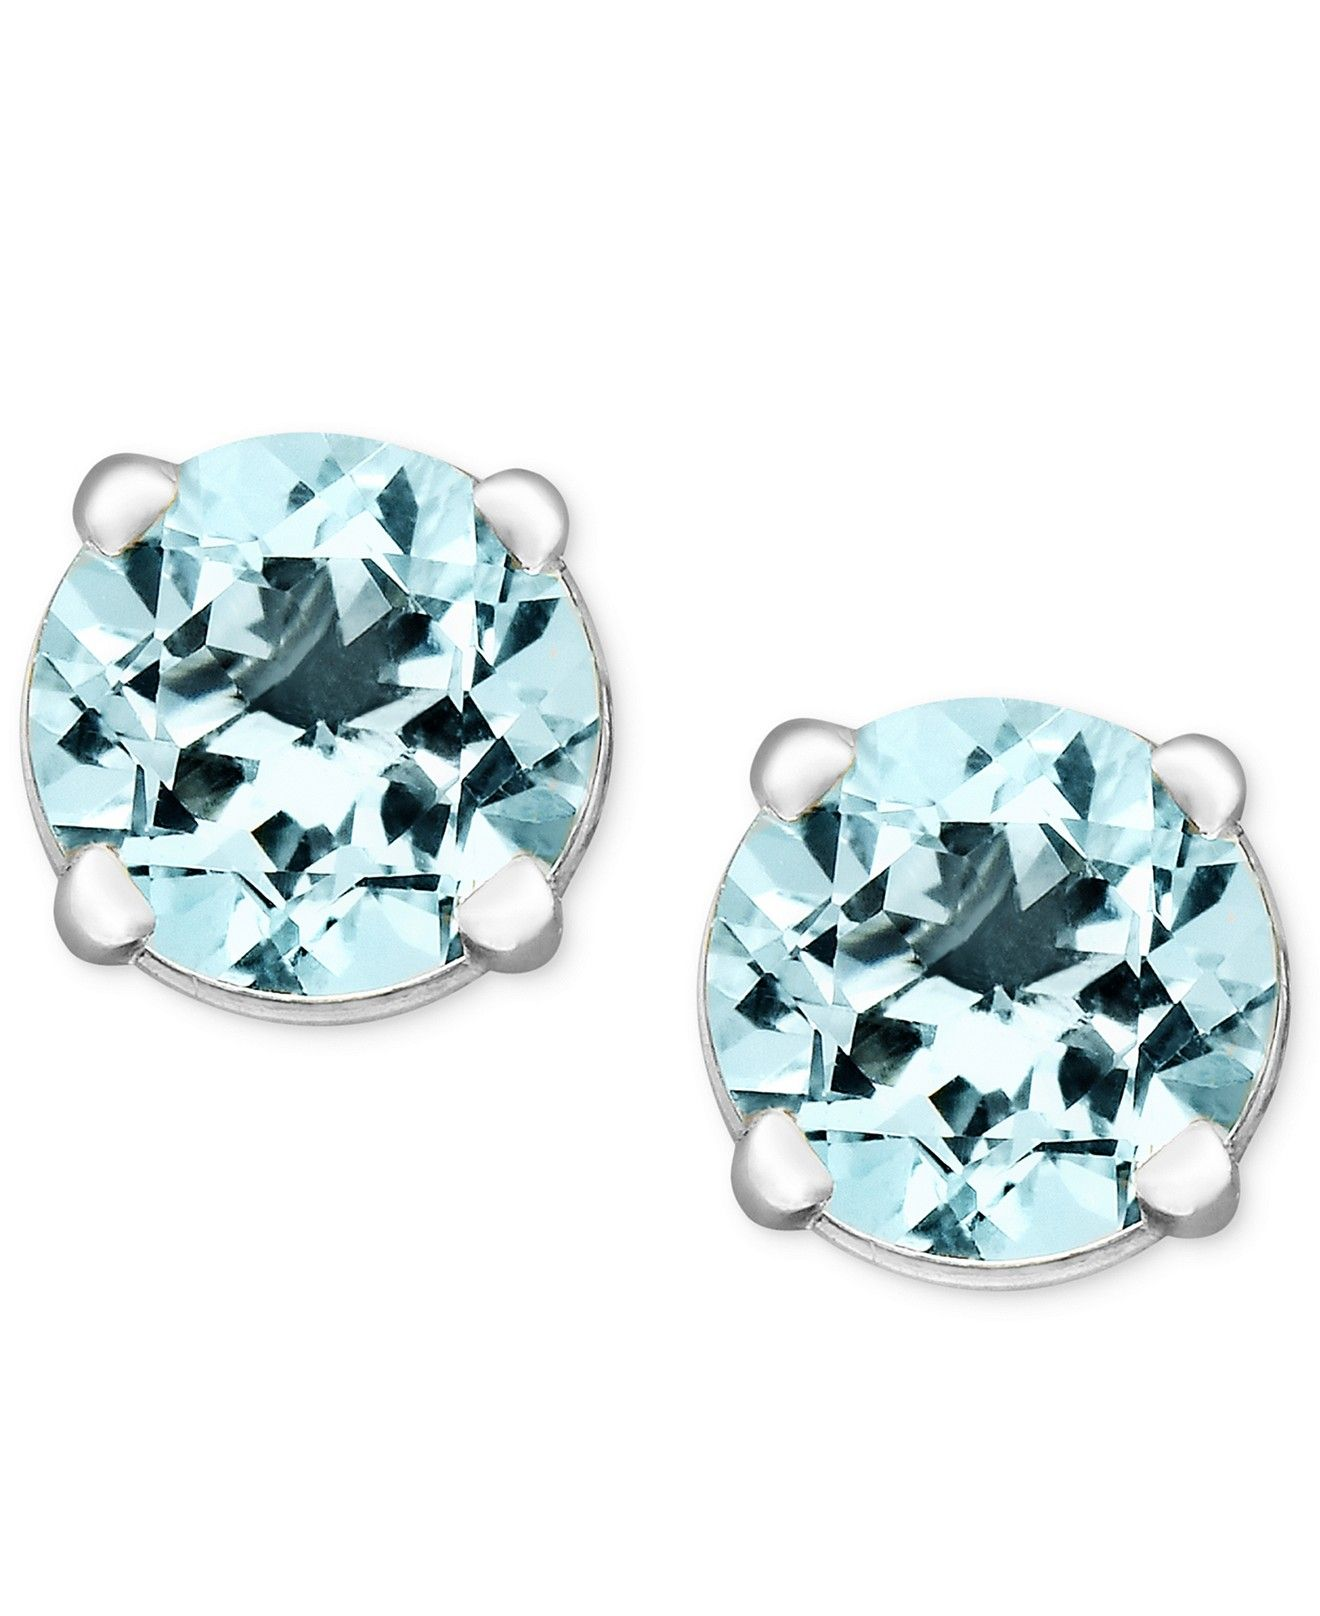 aquamarine back special offer round earring stud ebay aqua screw itm marine